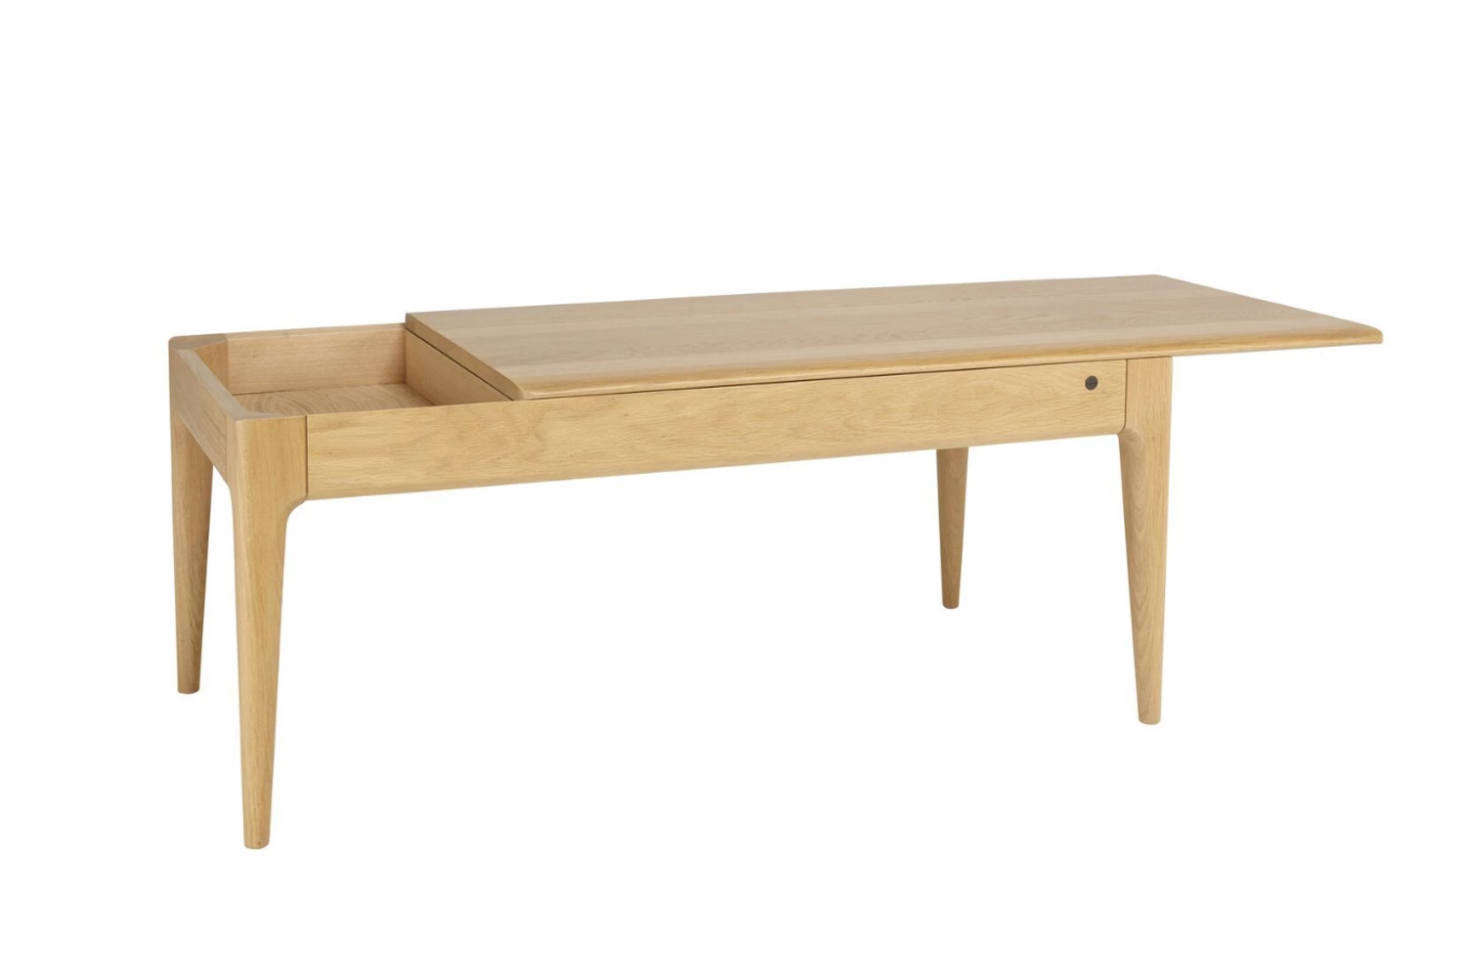 The Romana Coffee Table features a top that slides back to reveal a hidden compartment. Made in England of solid oak for $1,310 at Lekker Home.